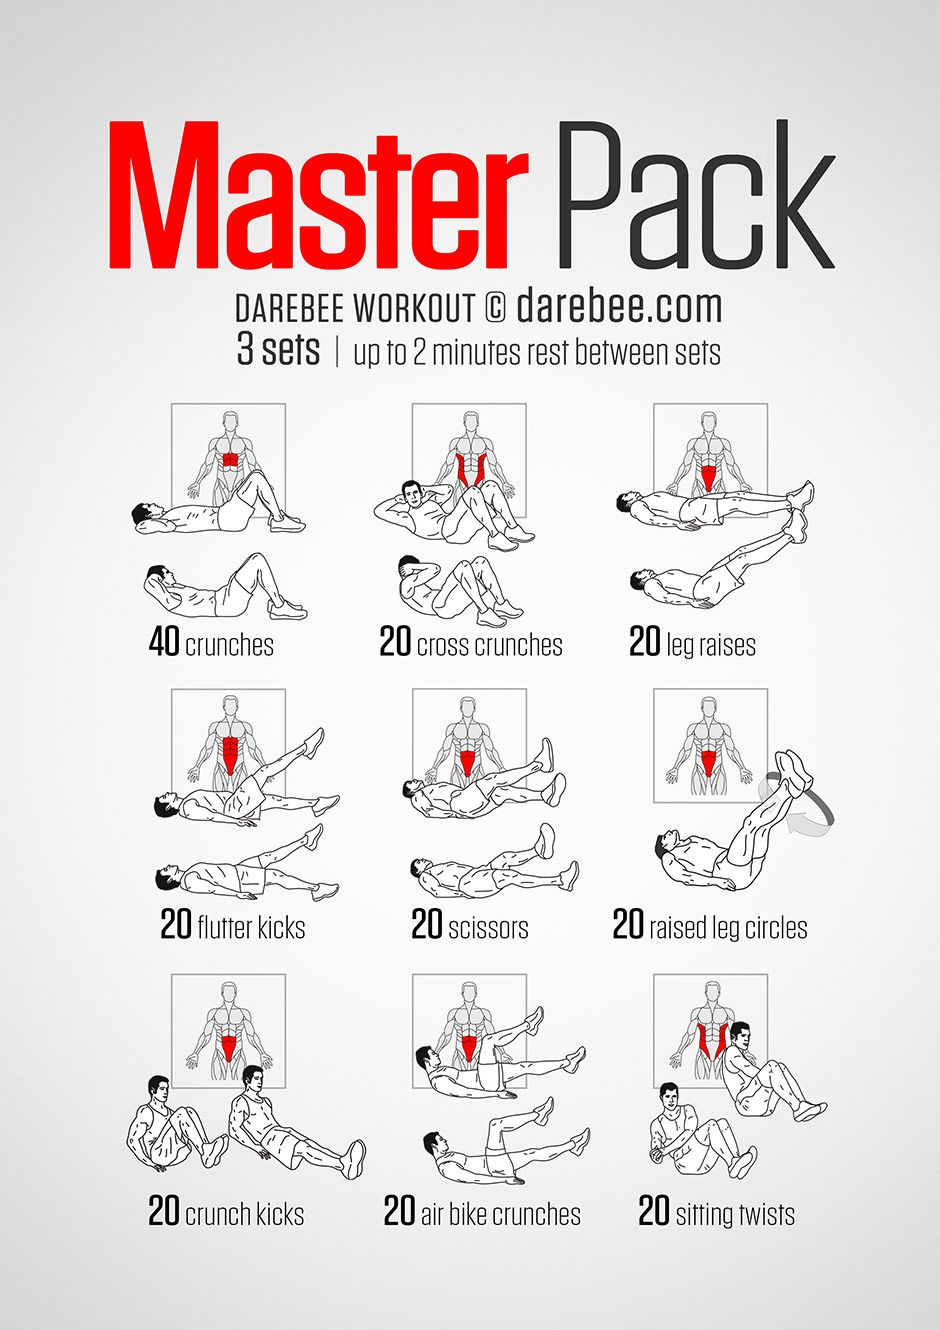 photograph regarding Printable Ab Workouts identify Masterpack Training Health and fitness Health, Health and fitness, Volume ab